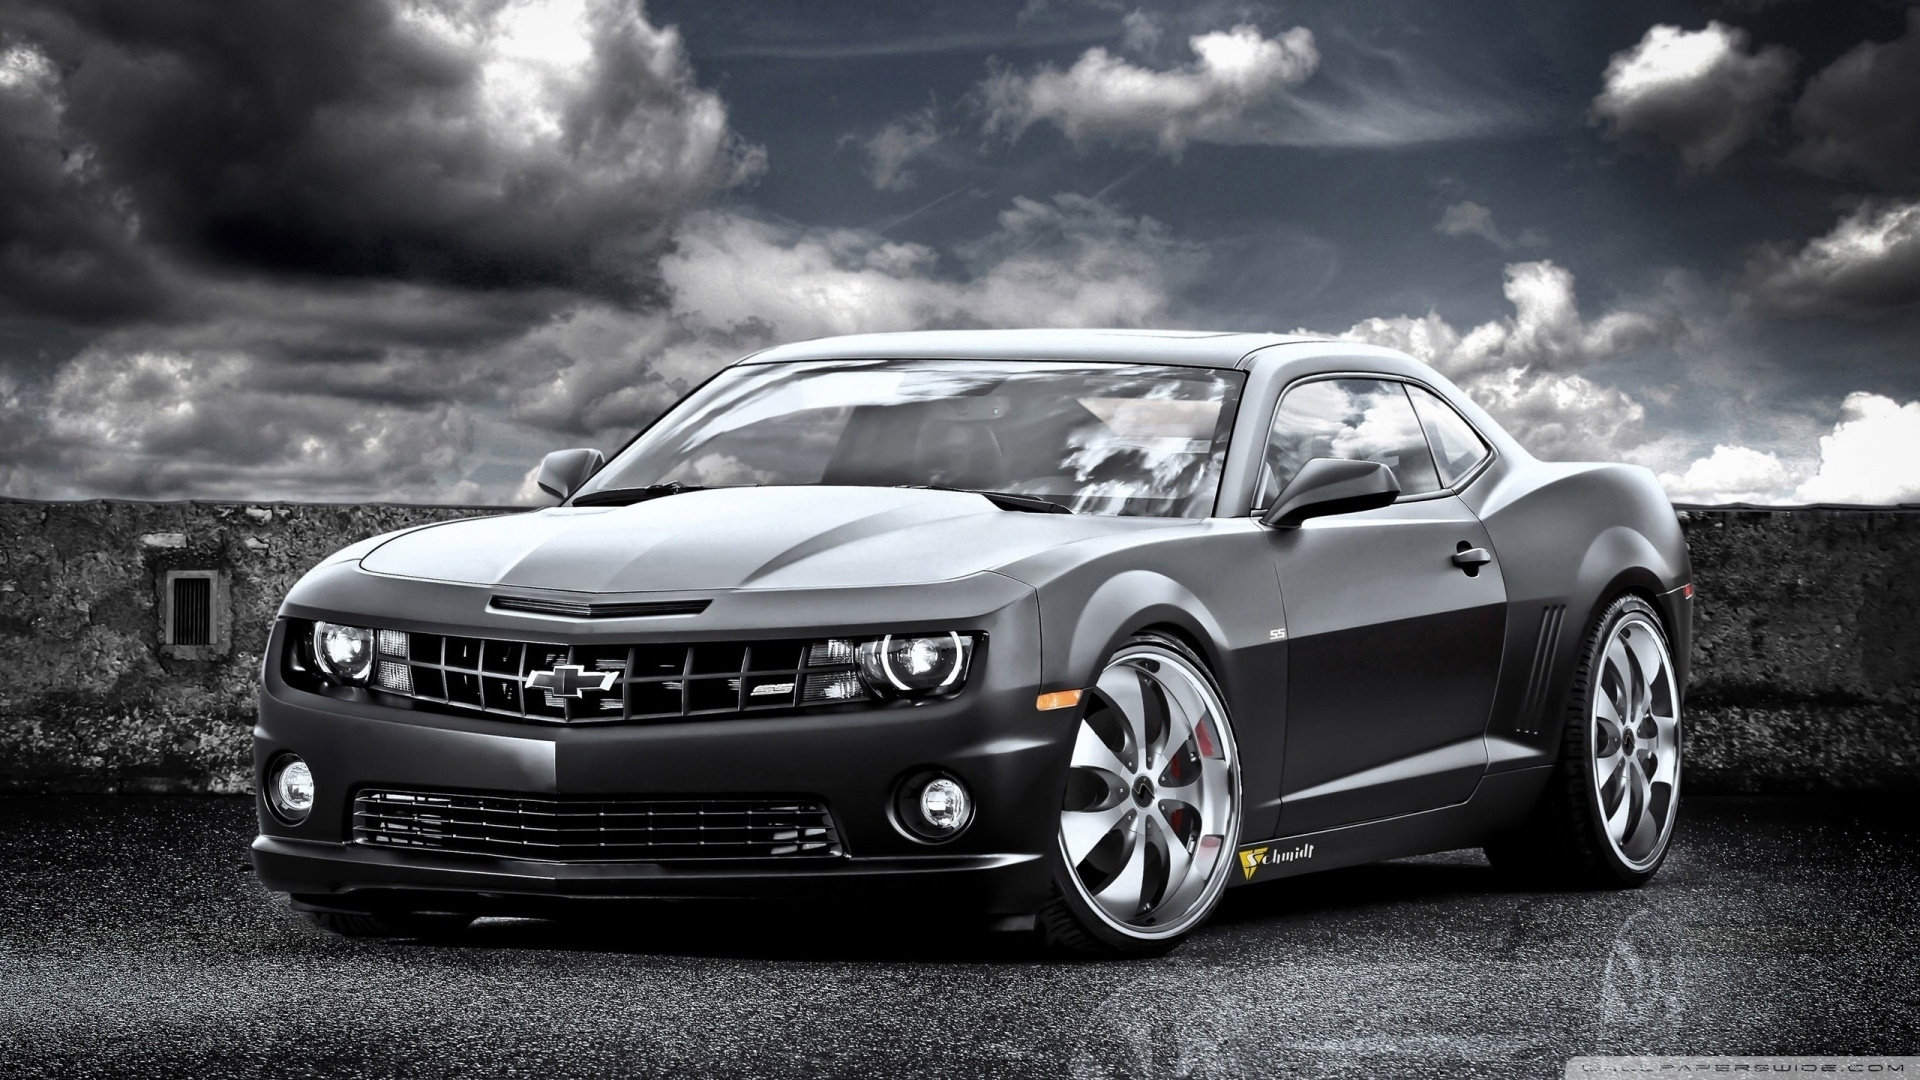 chevrolet camaro ss ❤ 4k hd desktop wallpaper for 4k ultra hd tv